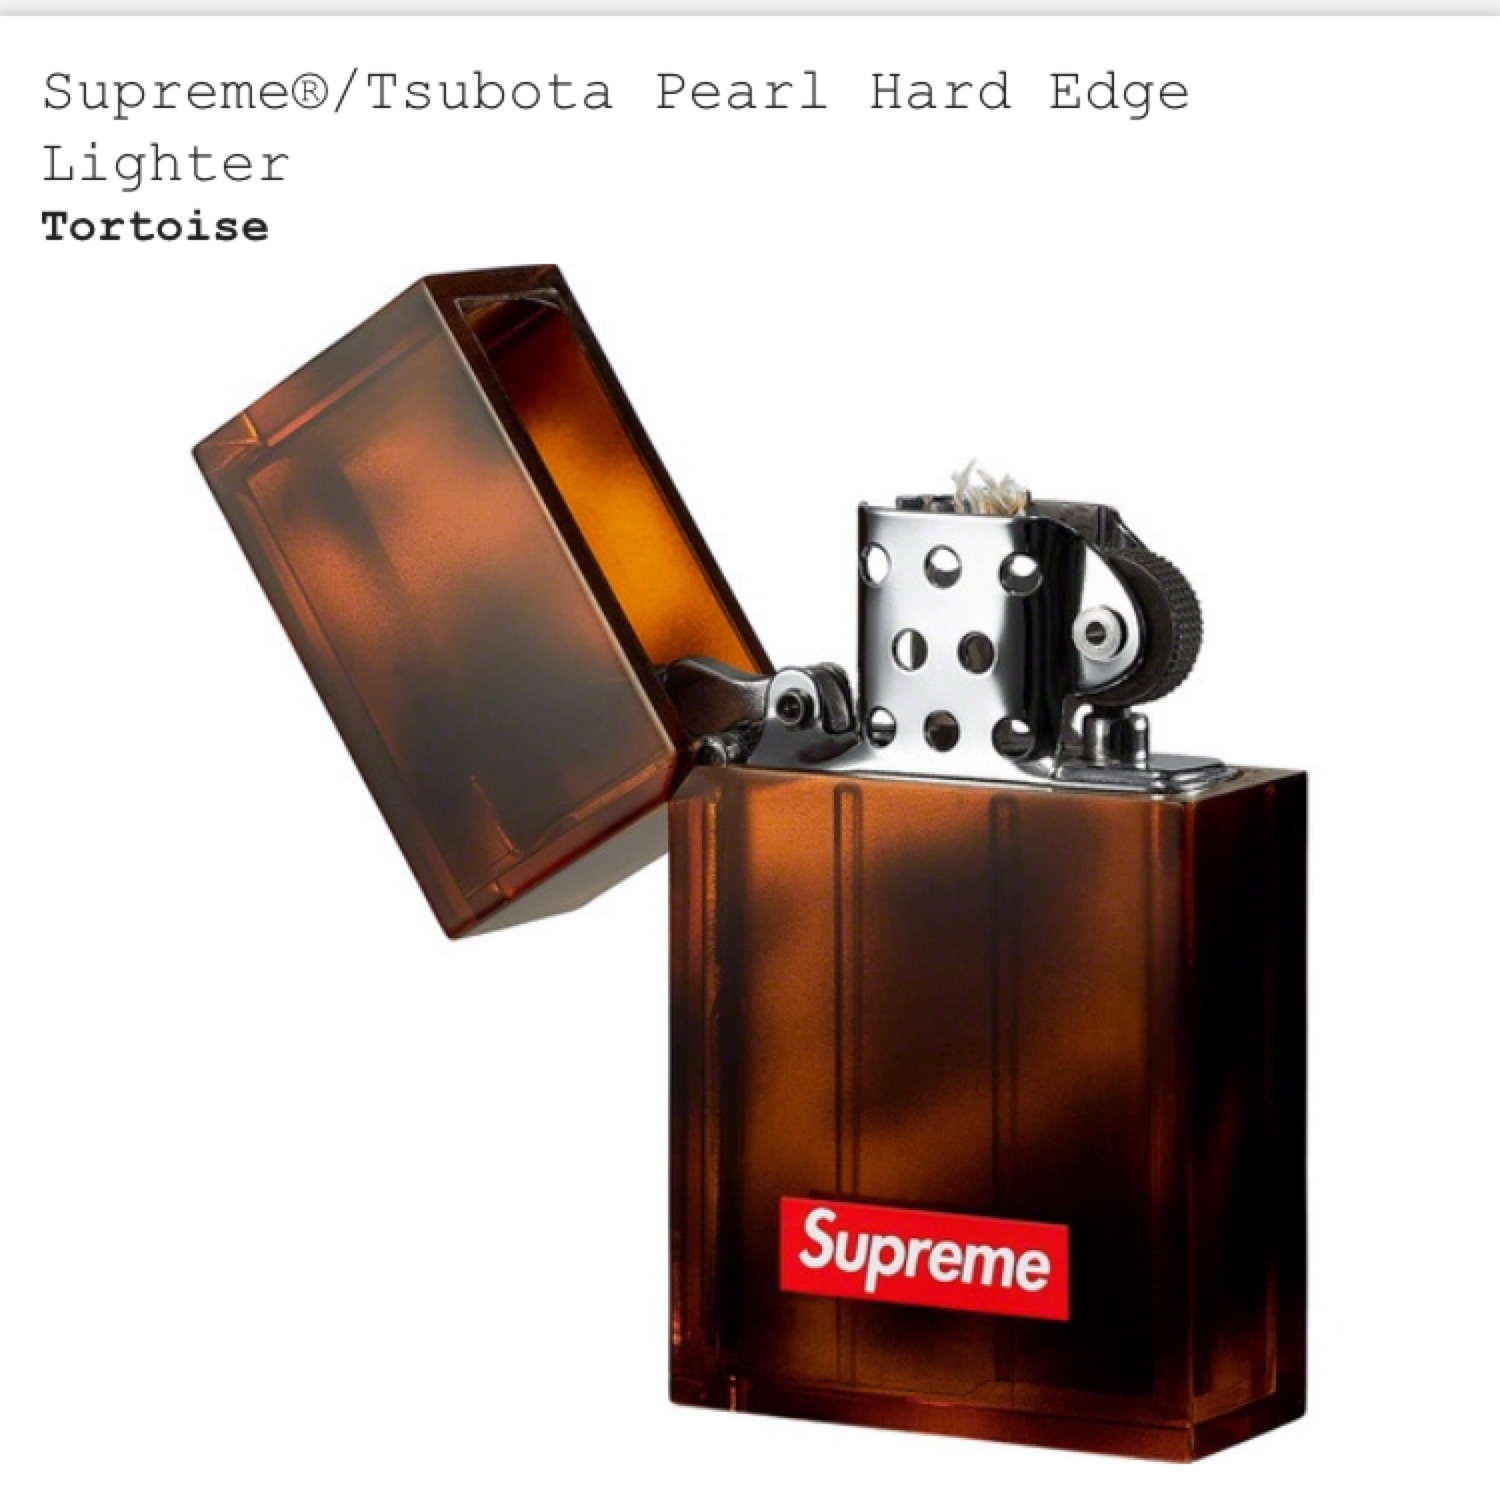 Surpeme Tsubota Pearl Hard Edge Light